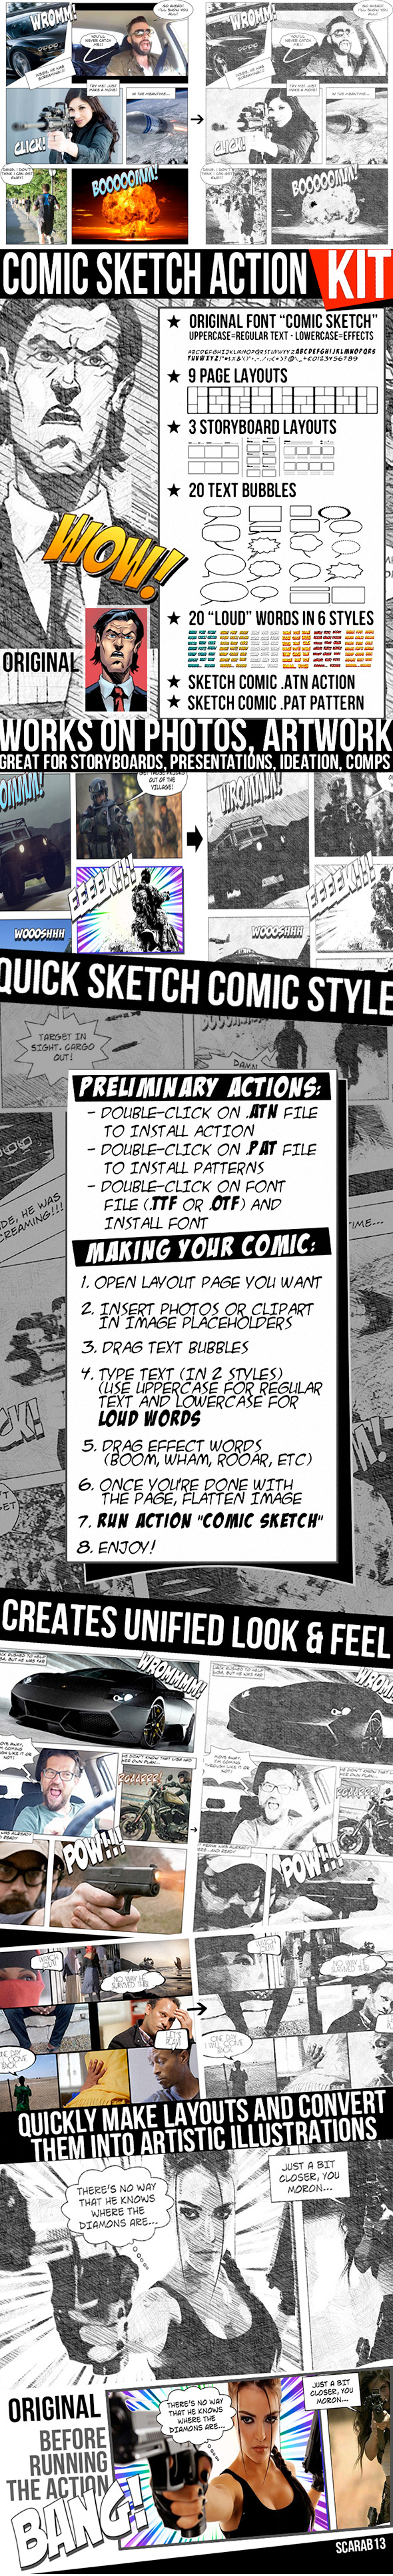 Comic Sketch Action Kit for Photoshop - Photo Effects Actions